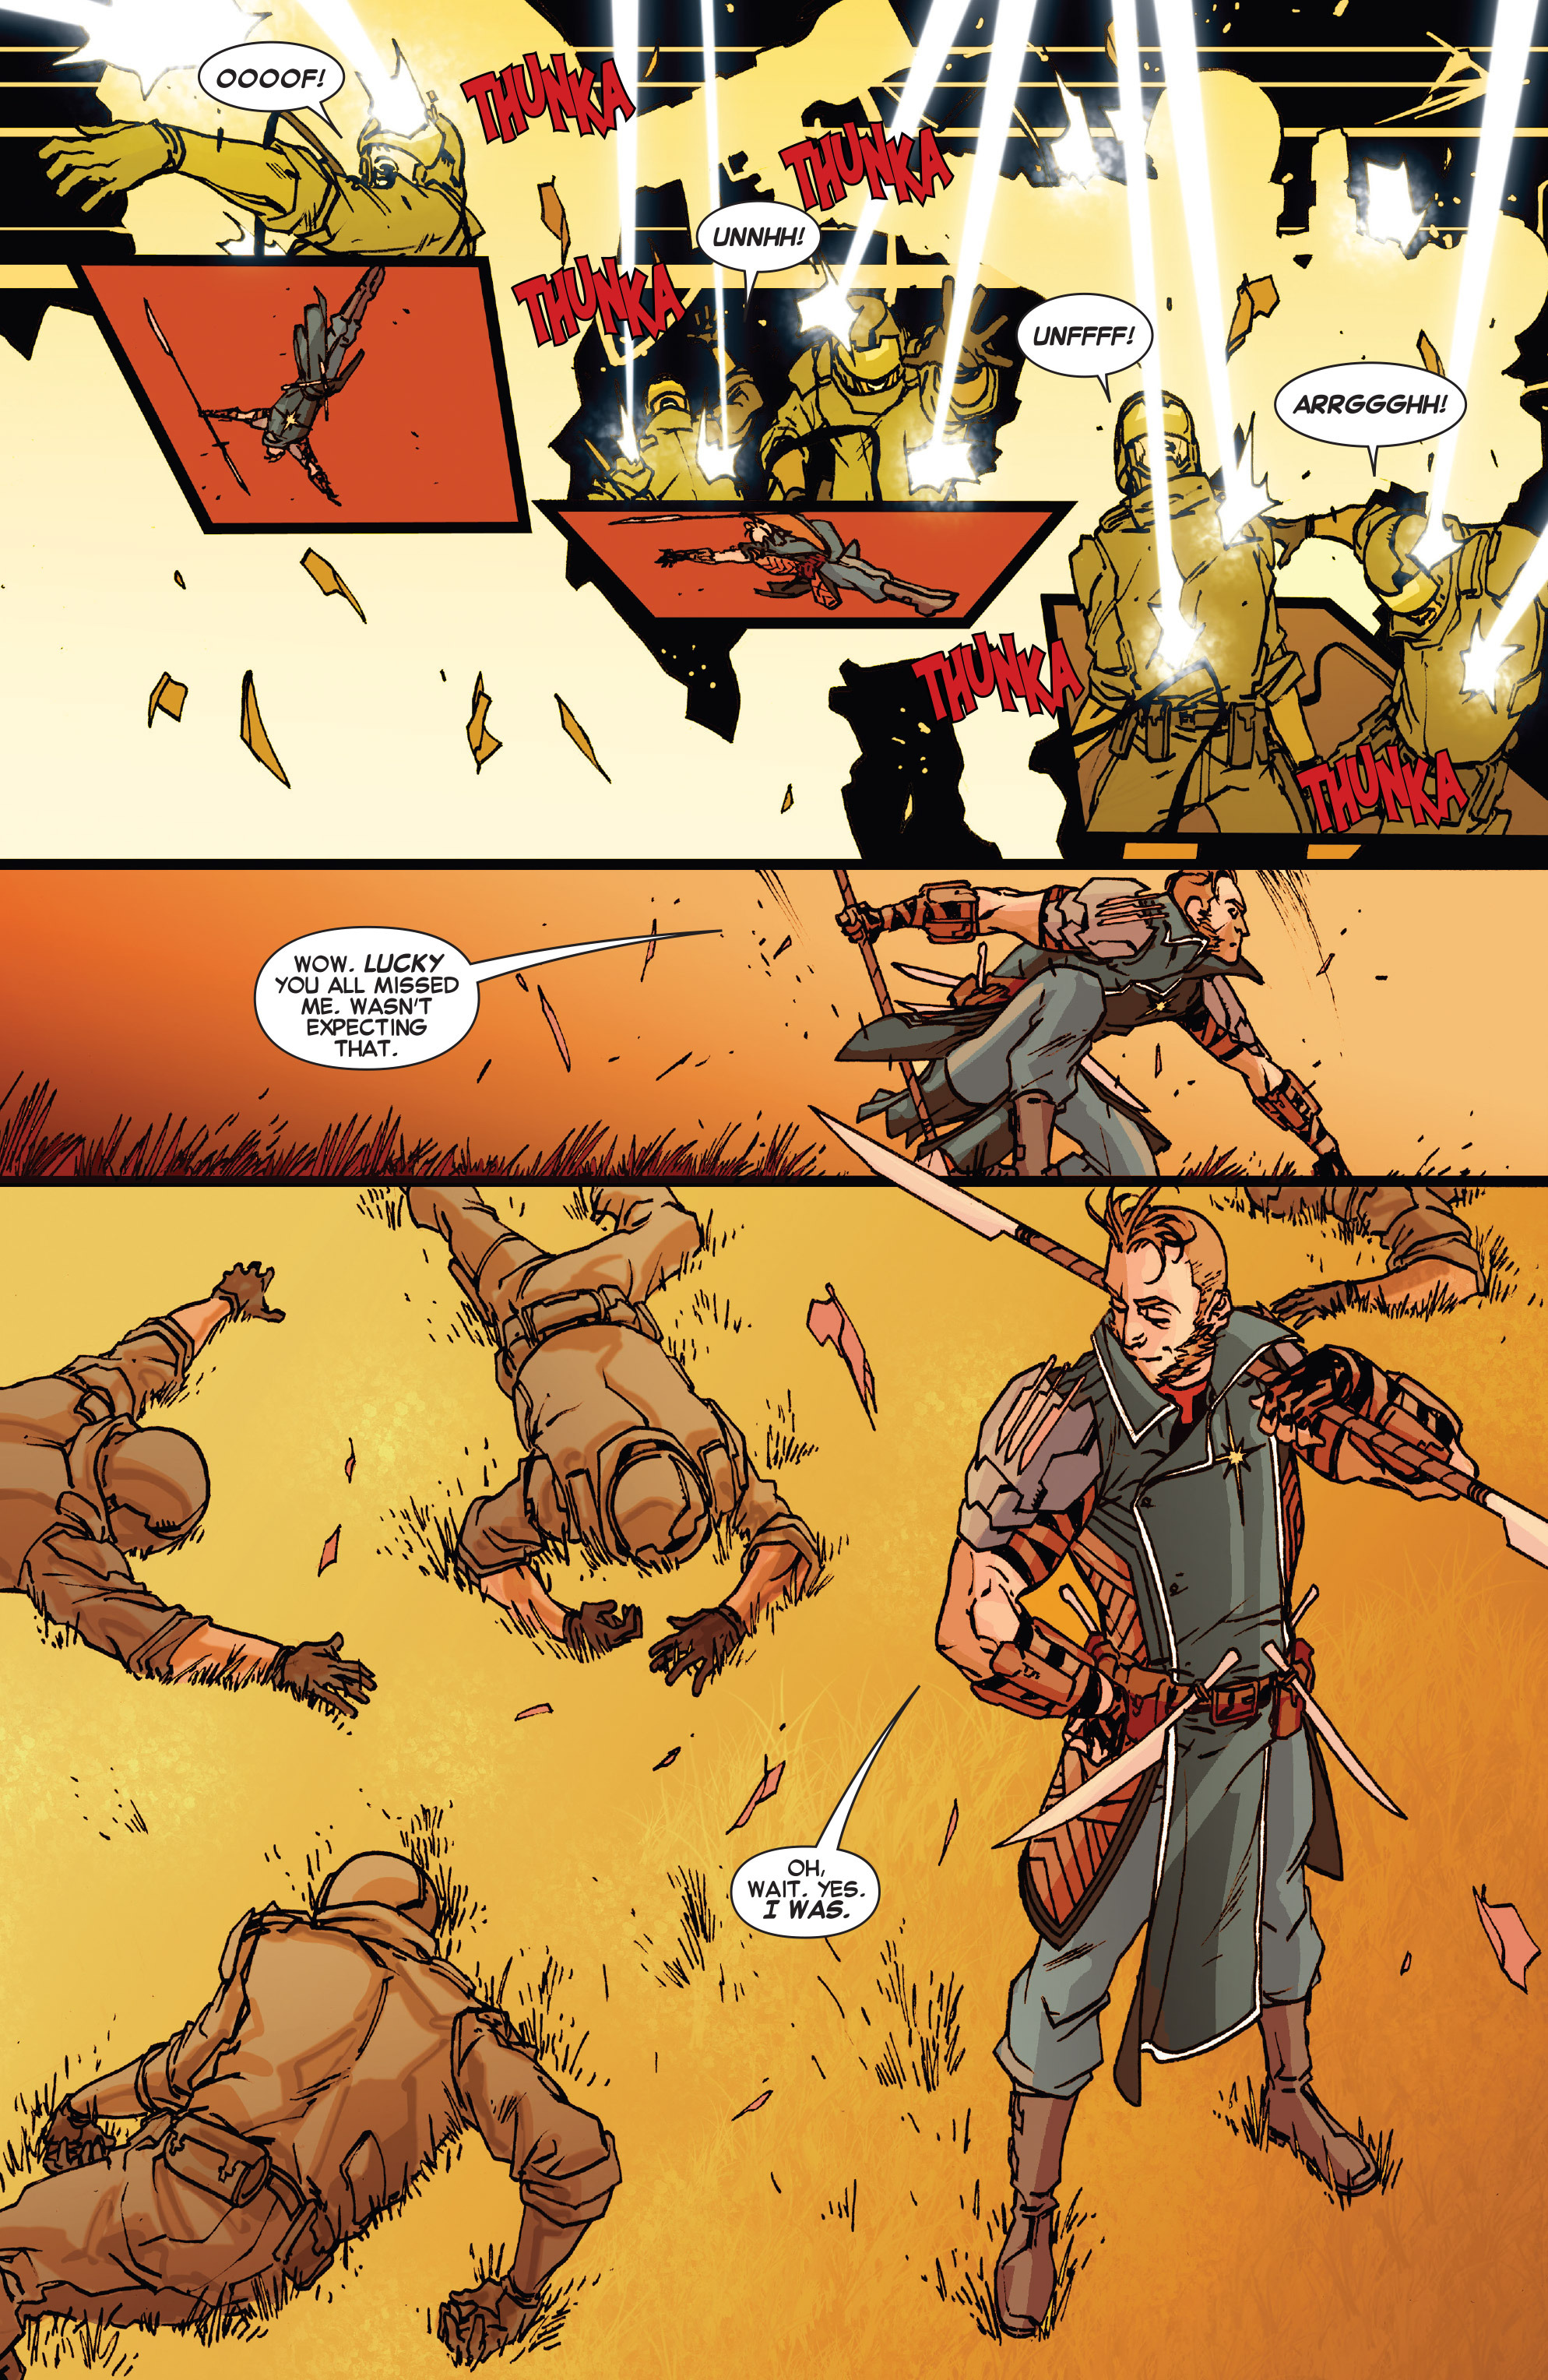 Read online All-New X-Factor comic -  Issue #17 - 15